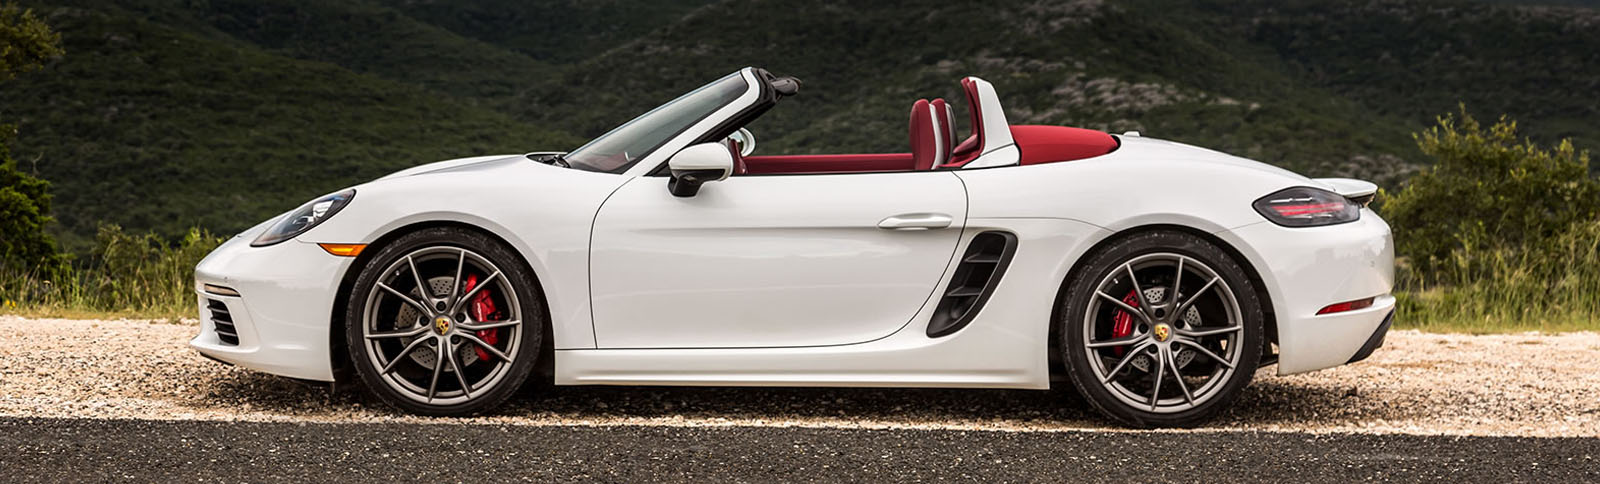 2017 Porsche 718 Boxster Appearance Main Img